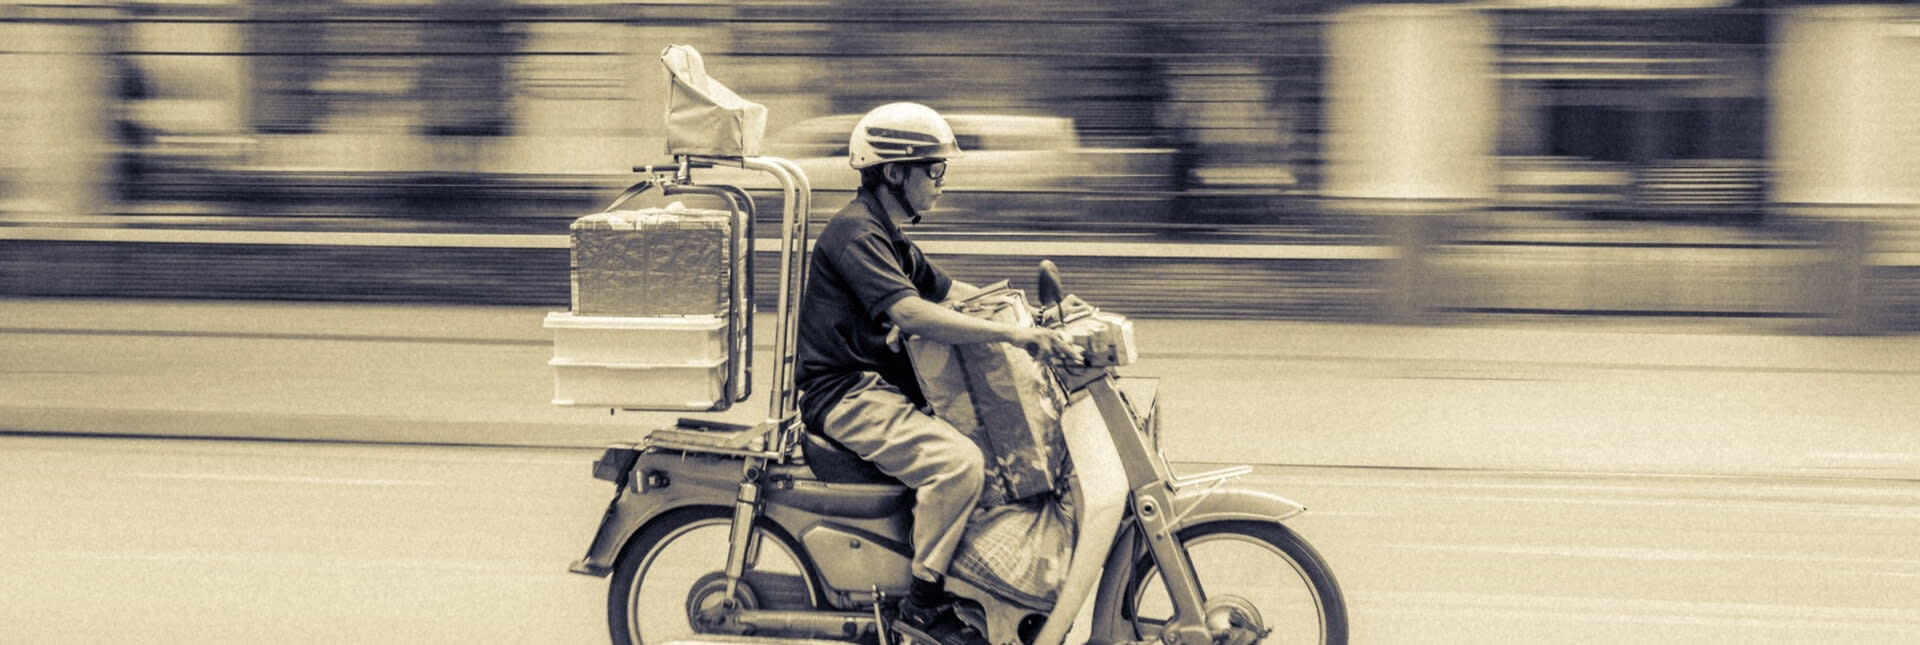 An image of someone delivering food on their motorcycle.